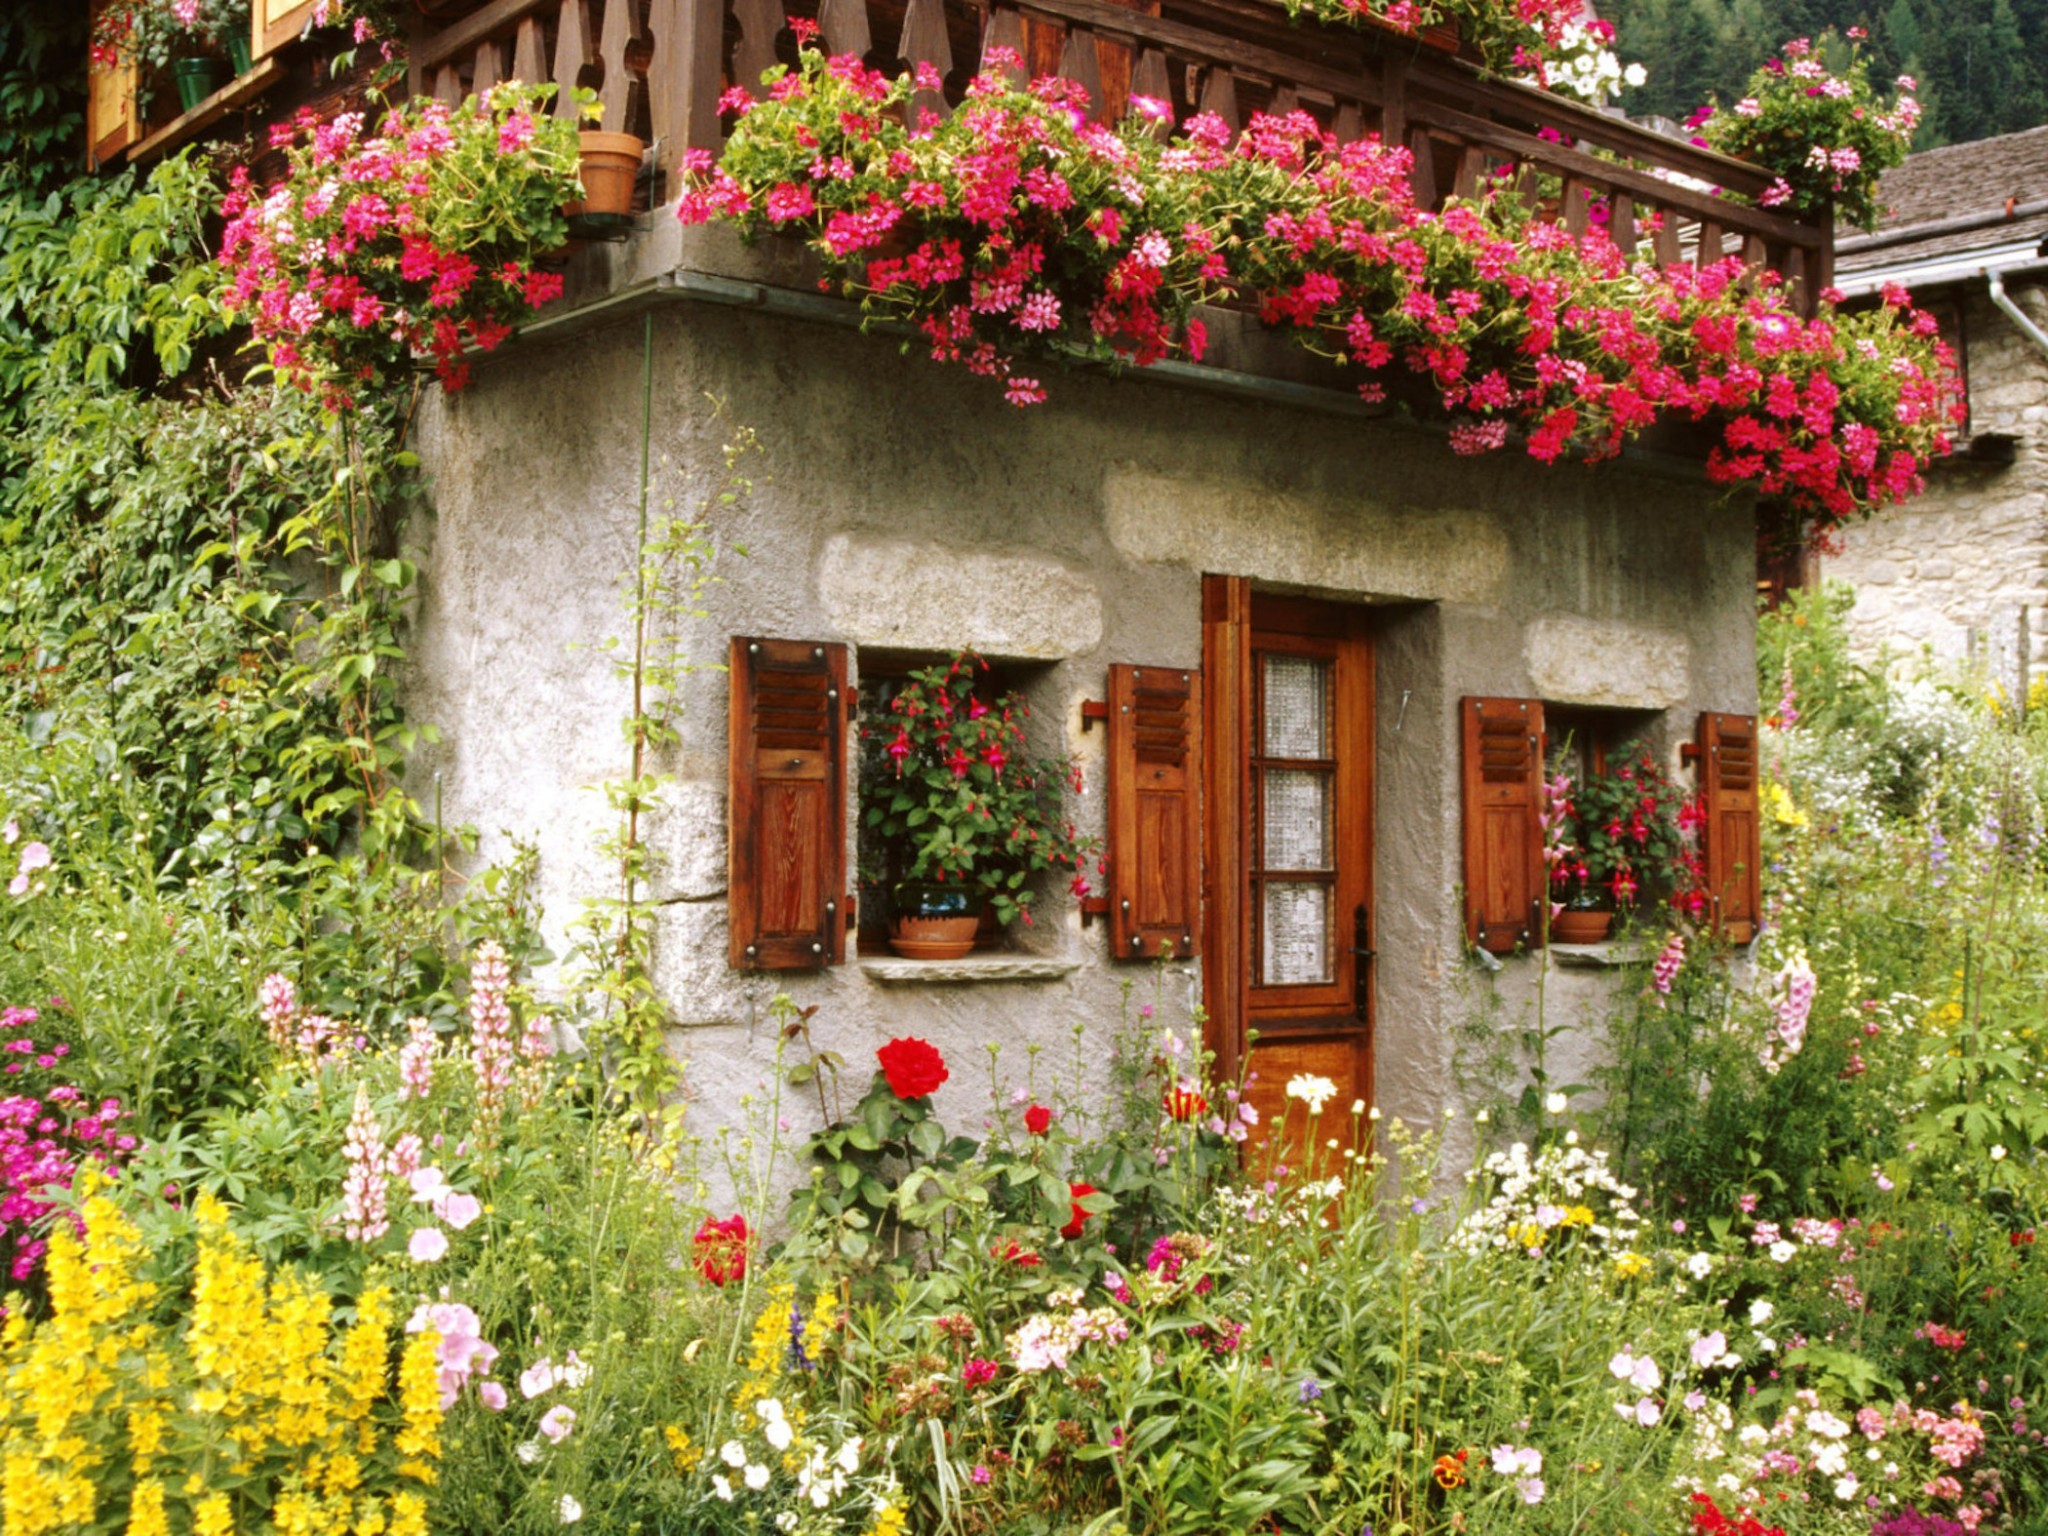 Lovely english cottage garden wallpaper free downloads for Best home wallpaper